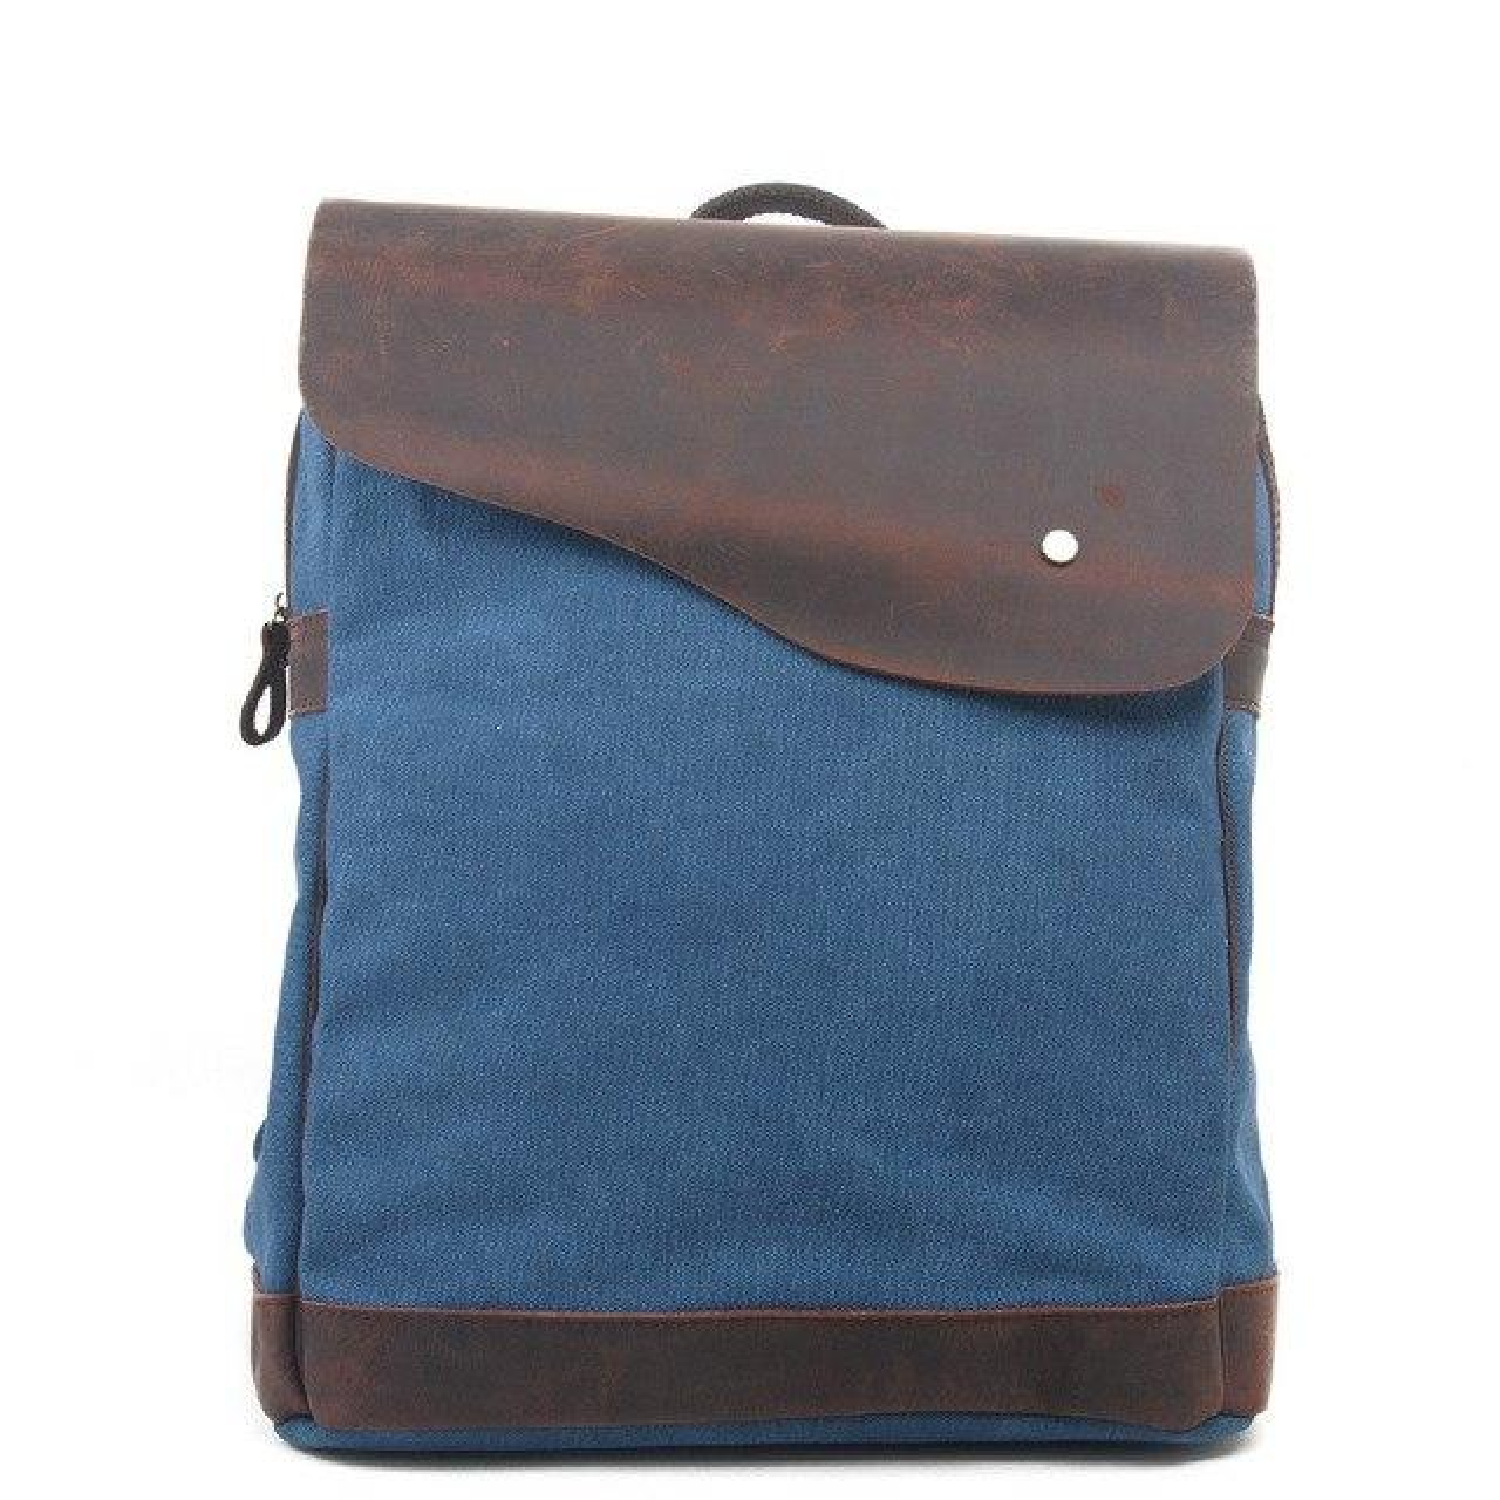 Vintage Canvas Backpack Rucksack Travel Men Bag Hiking School Satchel Women  Army S Shoulder Laptop Sports Sport Camping Book Dasein on Storenvy 98336a0cfc632